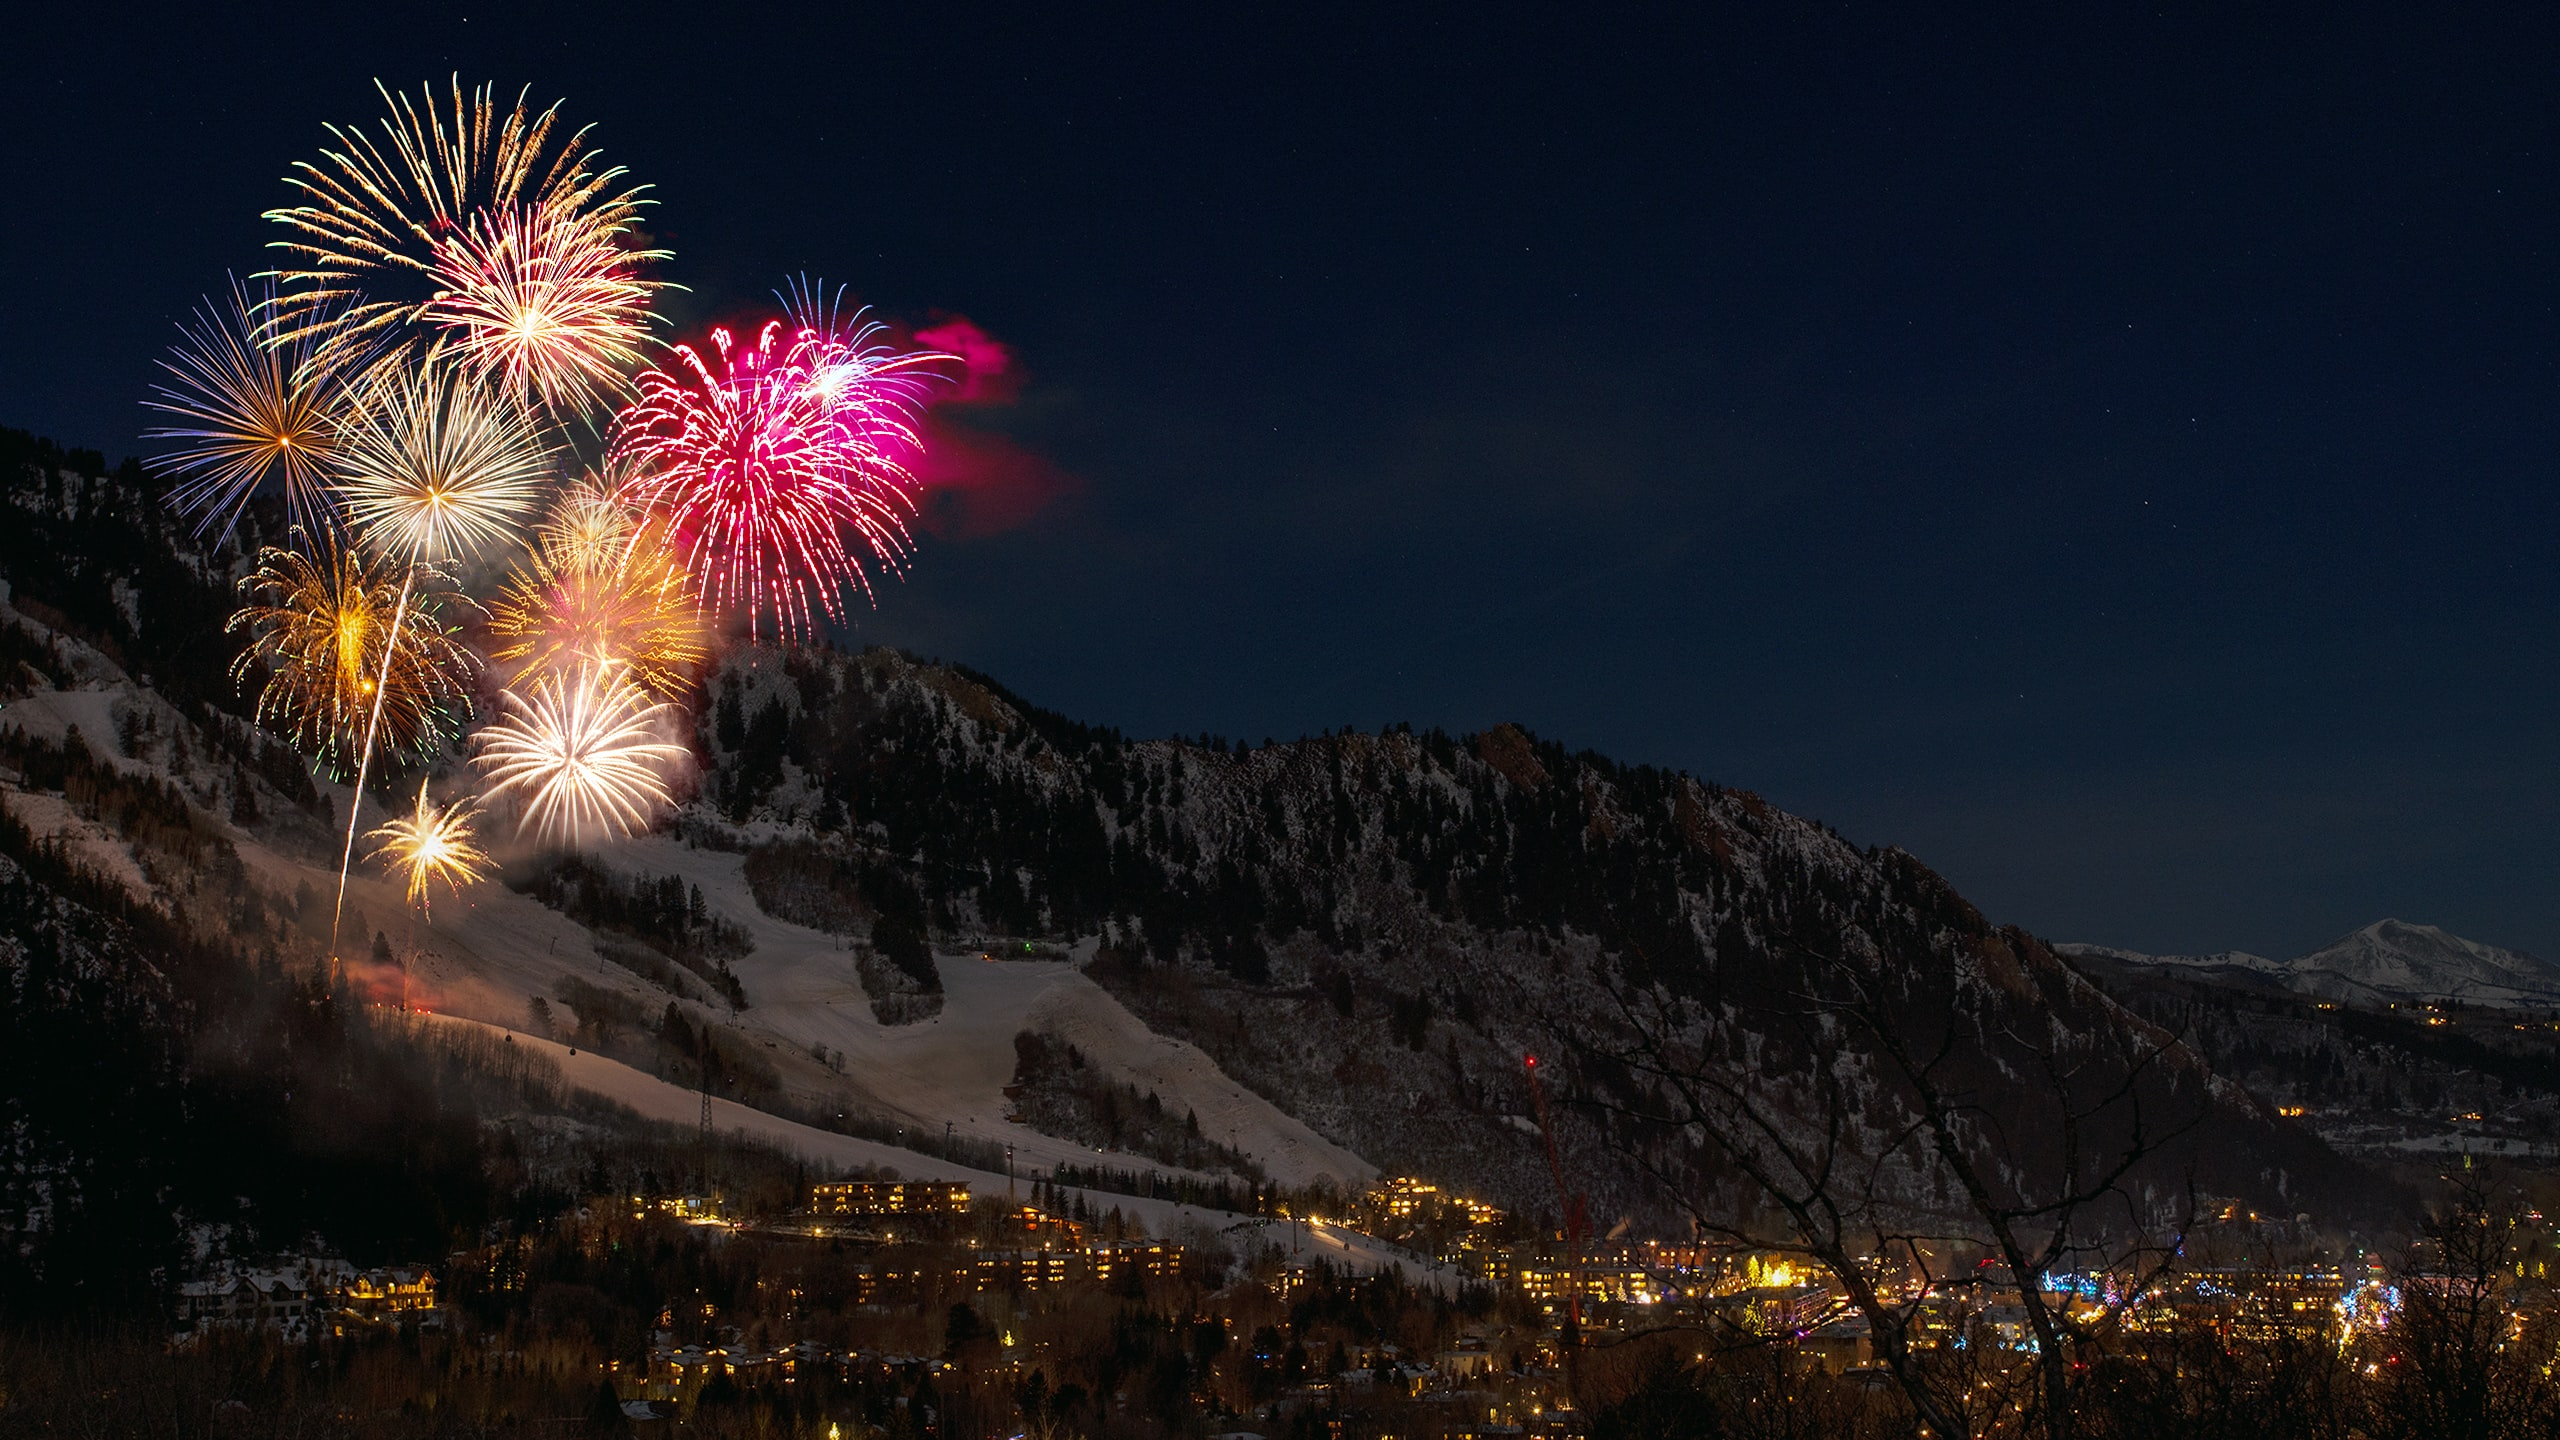 fireworks display from snow capped mountain during nighttime